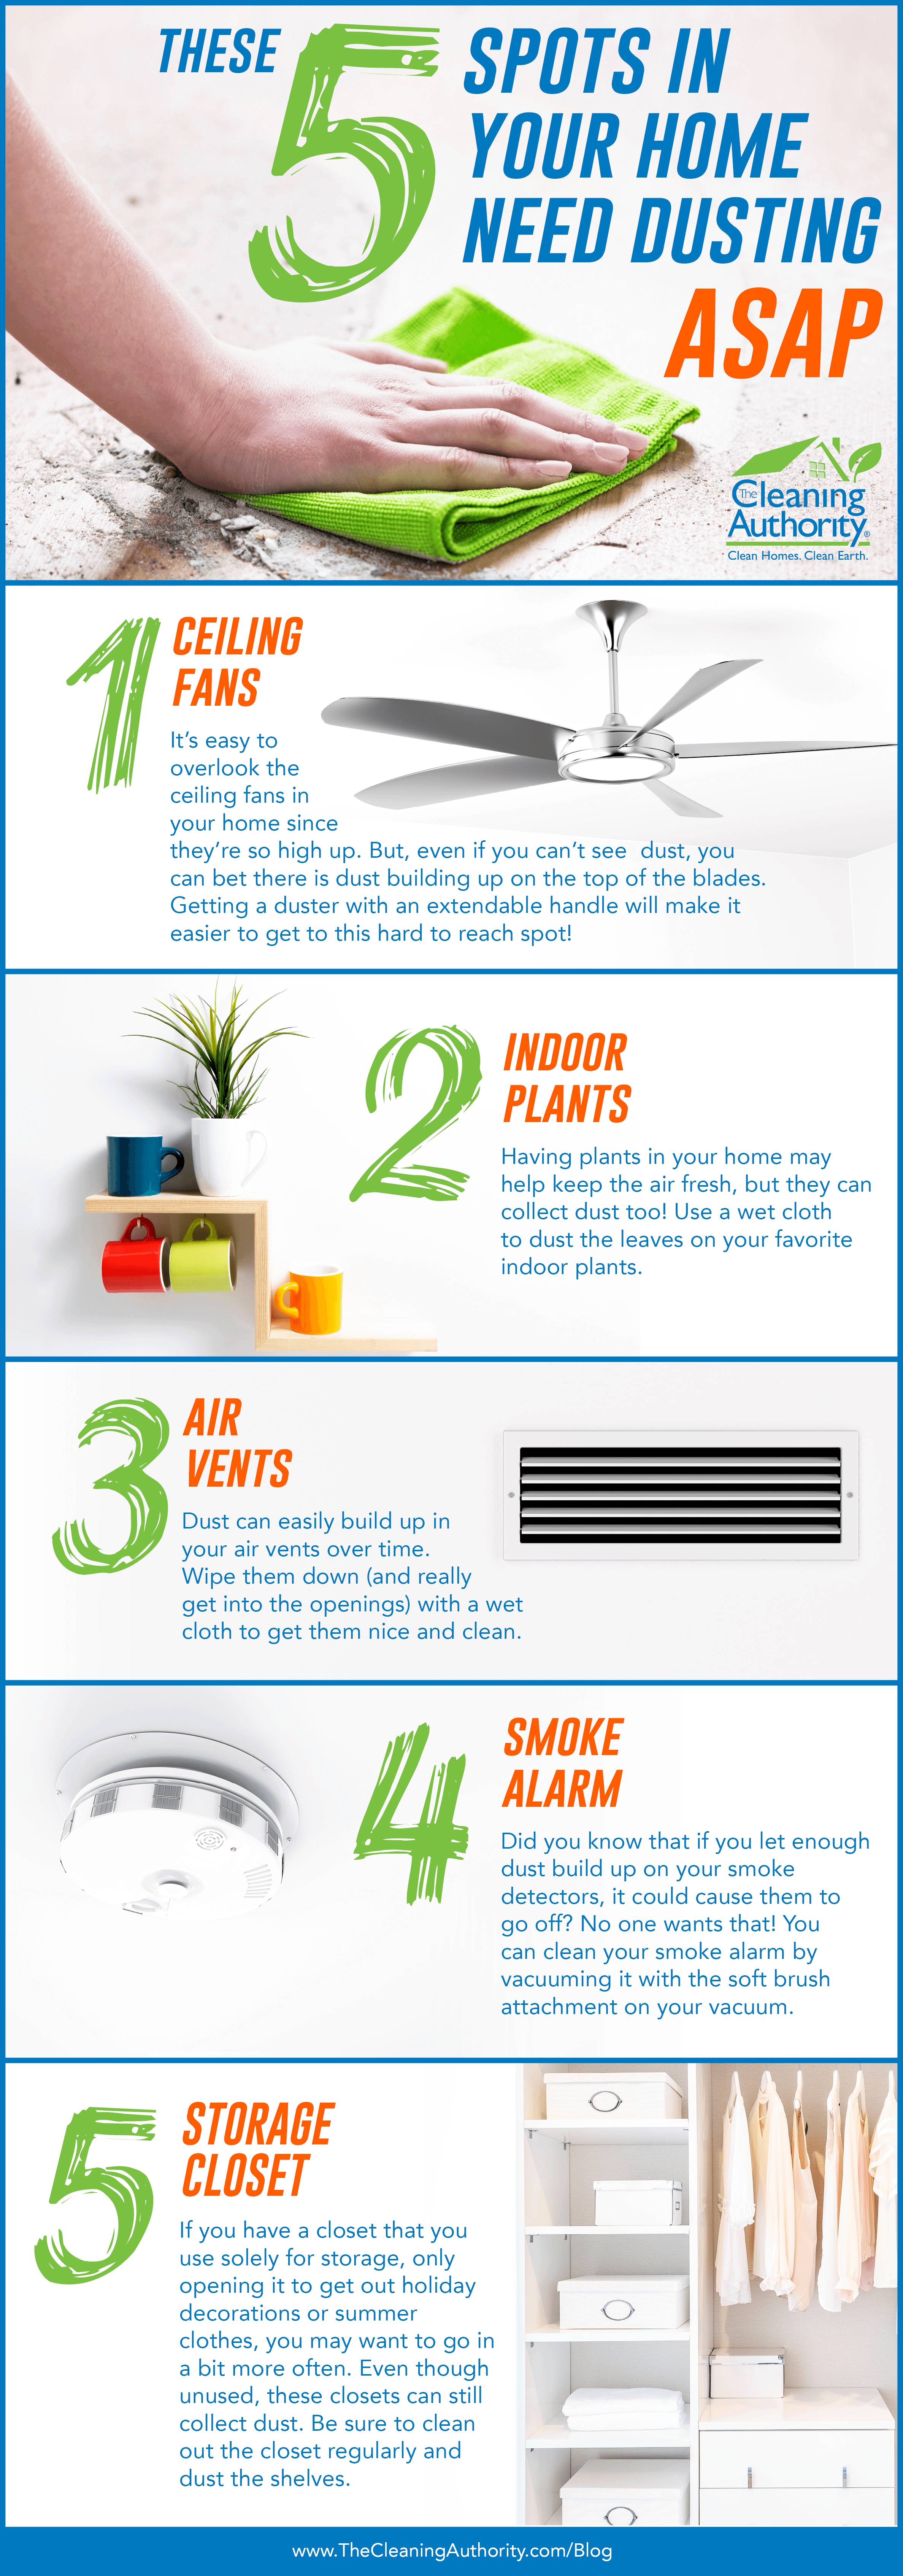 These Five Spots in Your Home Need Dusting  infographic